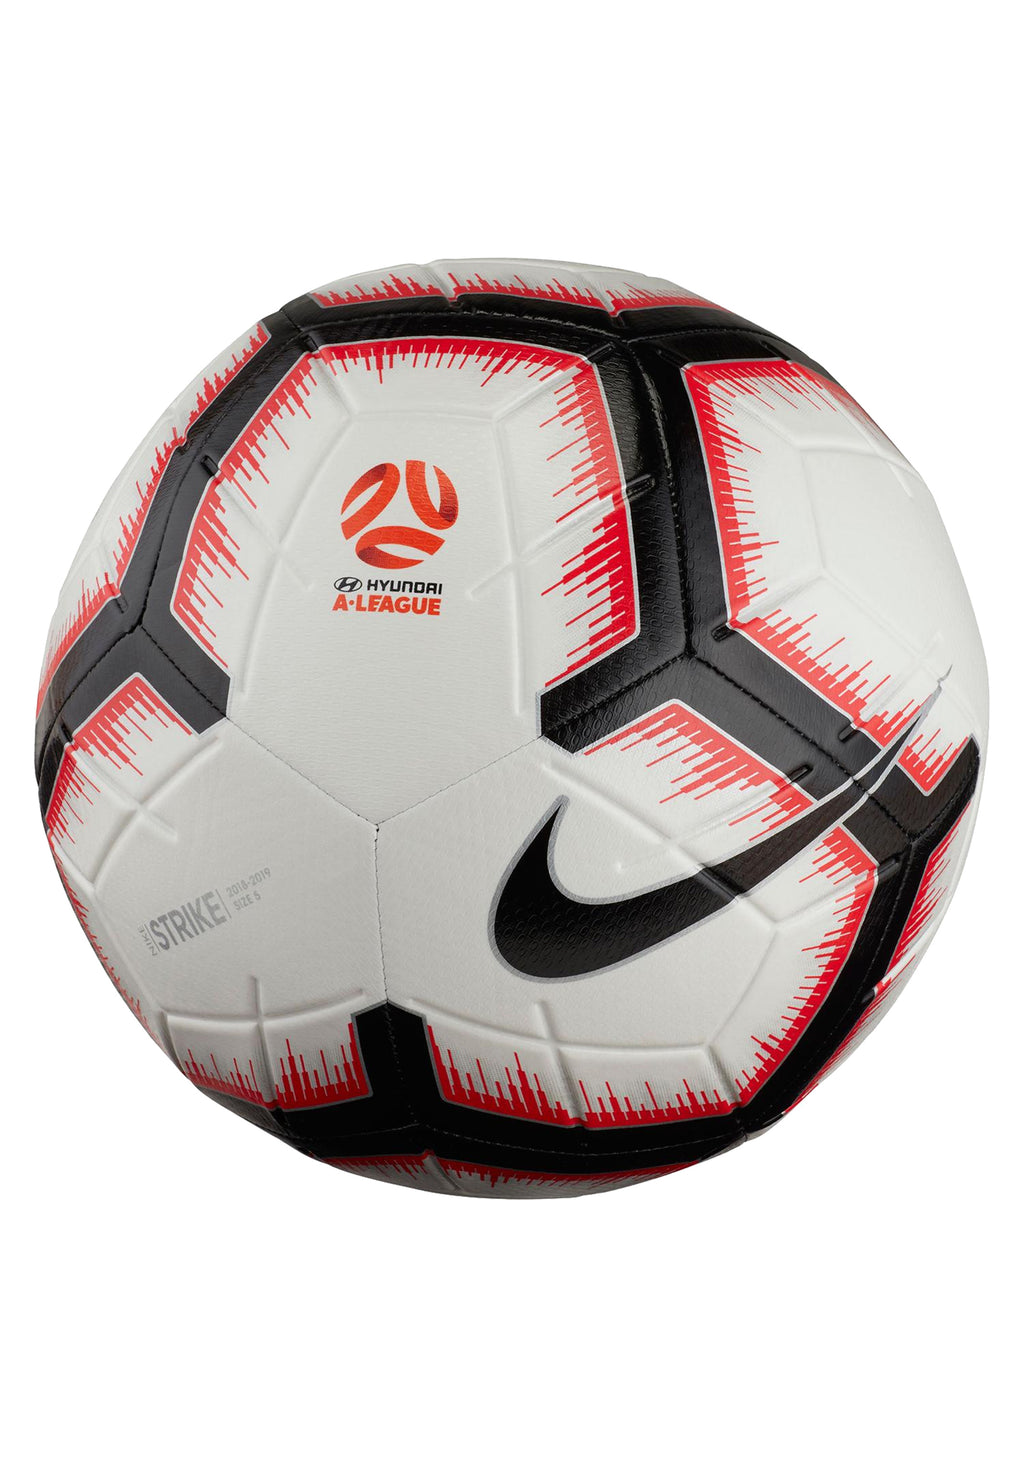 NIKE STRIKE A LEAGUE SOCCER BALL <BR> SC3312 100